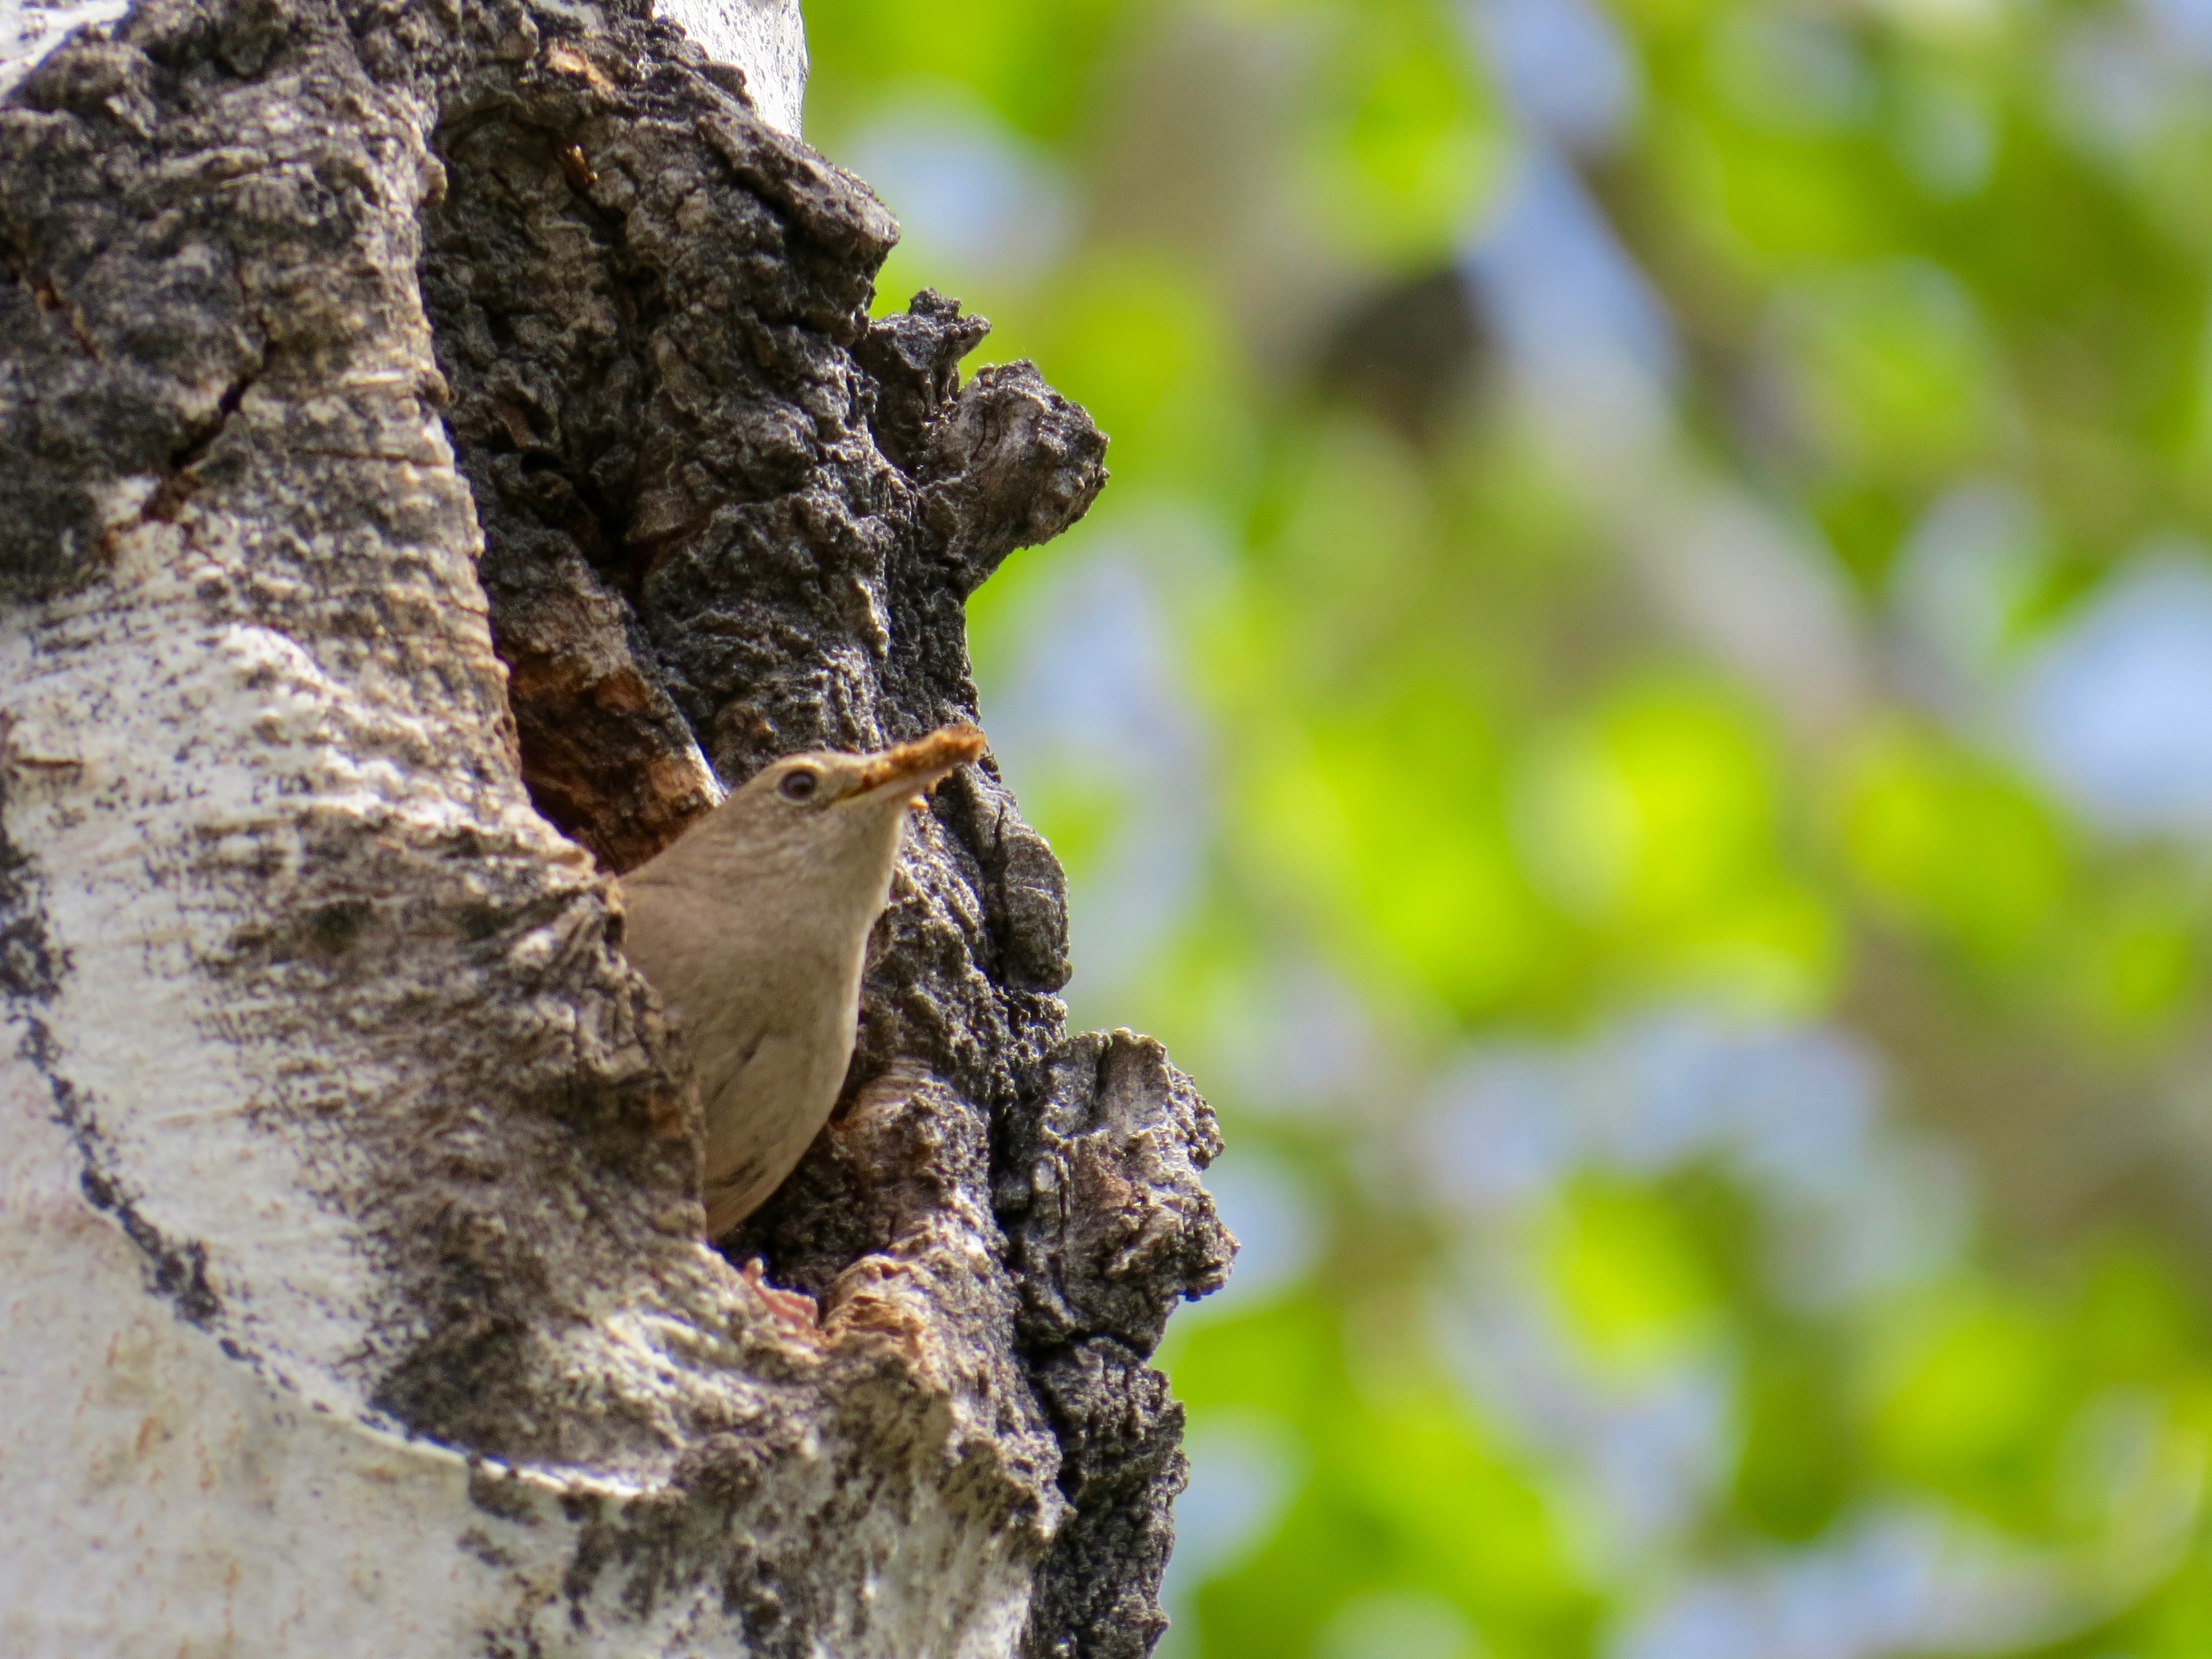 DESPITE HUNDREDS OF HIKERS/BIKERS ON SMUGGLER MOUNTAIN, THIS TINY WREN IS BUSY BUILDING A HOME.